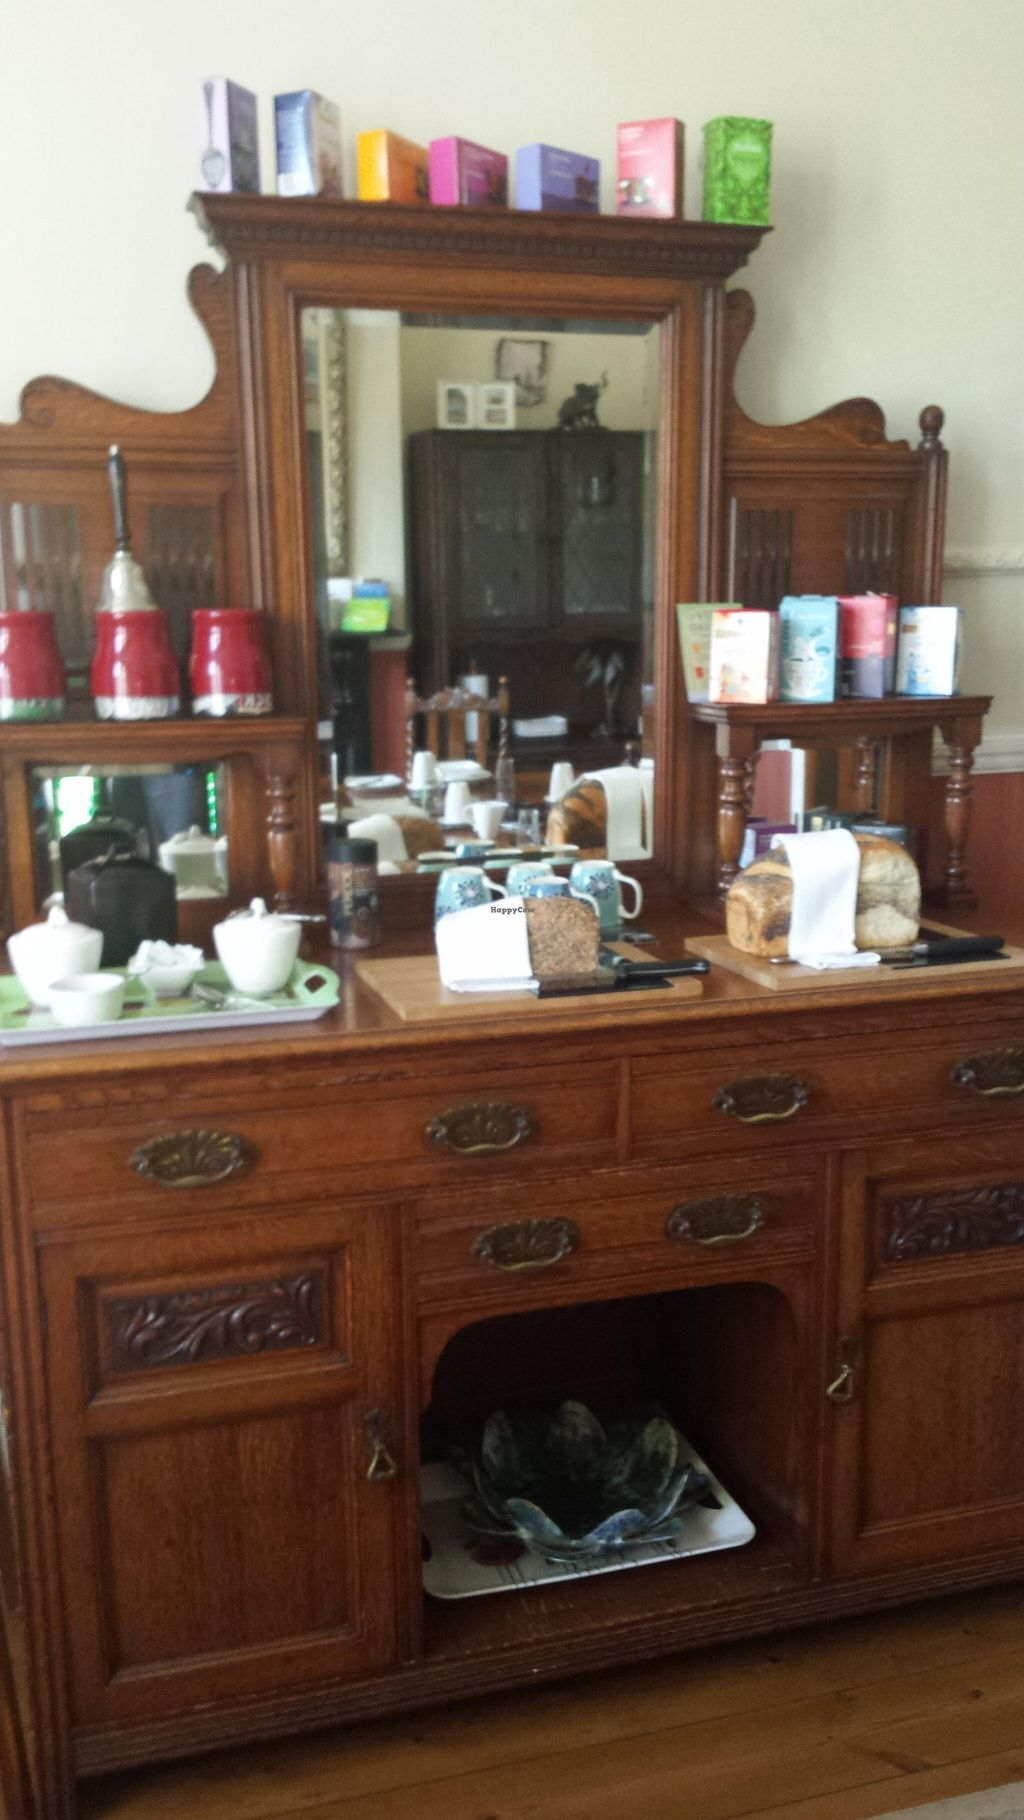 """Photo of BayTree House  by <a href=""""/members/profile/Good%20for%20Vegans"""">Good for Vegans</a> <br/>Dining room <br/> August 28, 2015  - <a href='/contact/abuse/image/25946/115461'>Report</a>"""